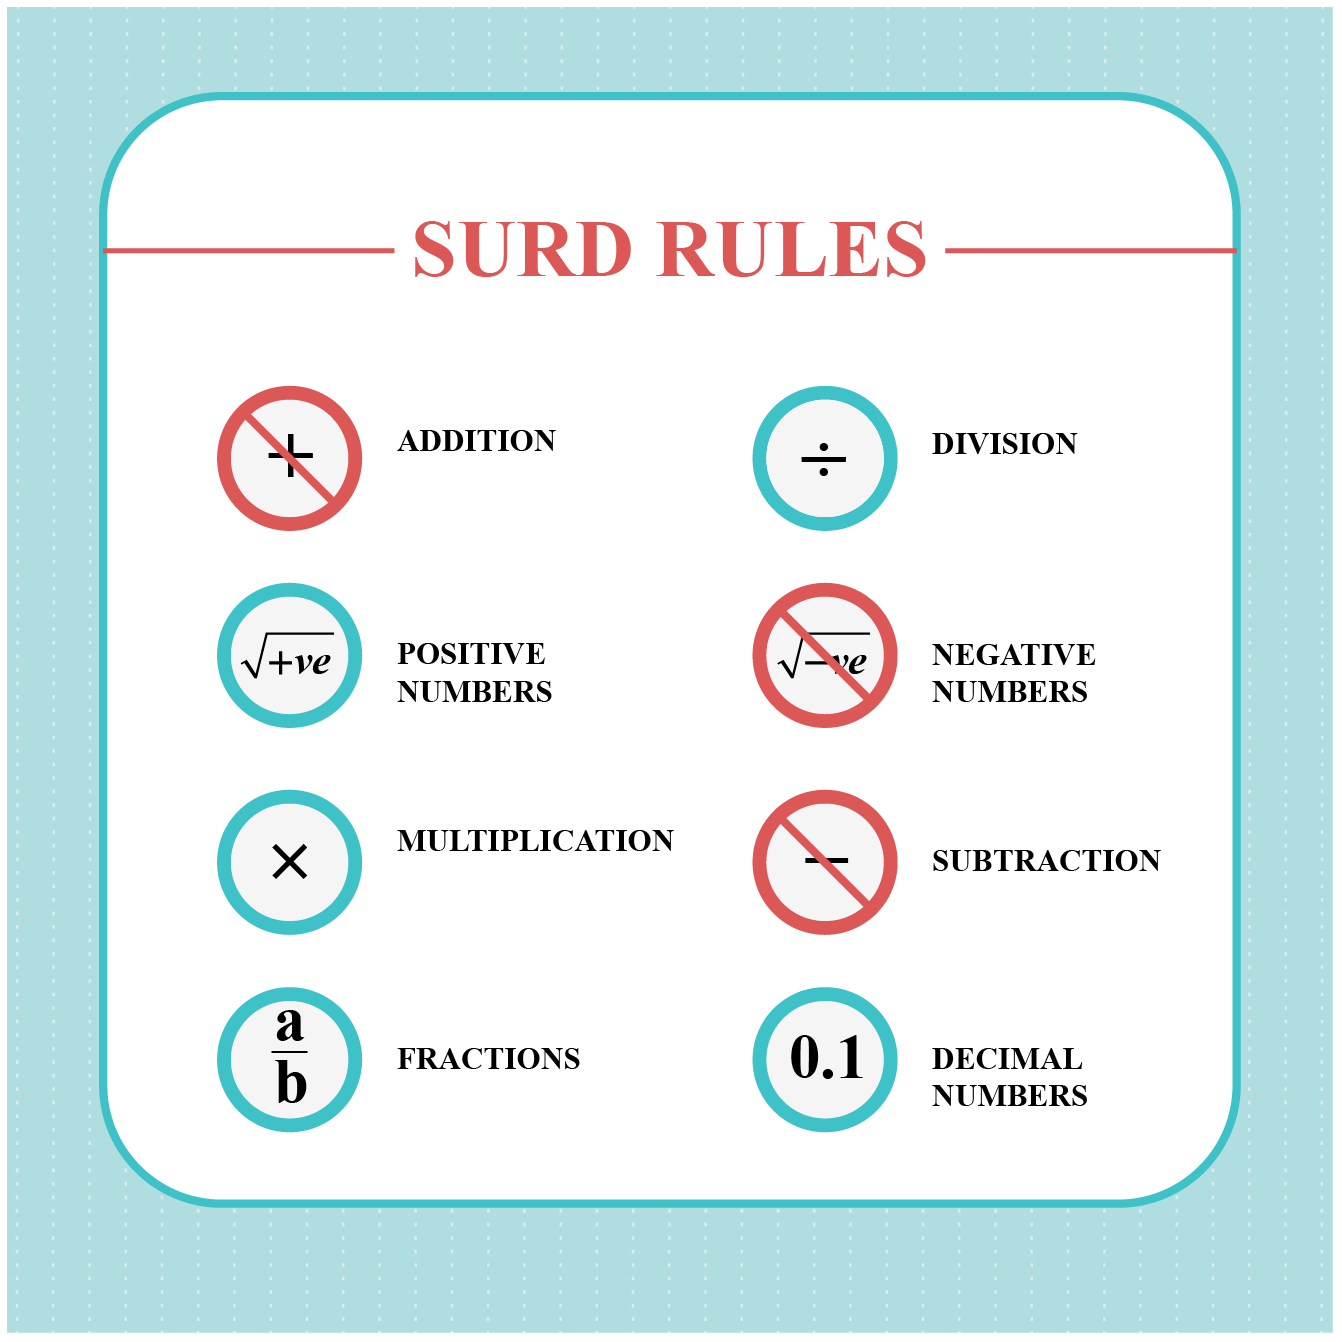 surd rules for the image